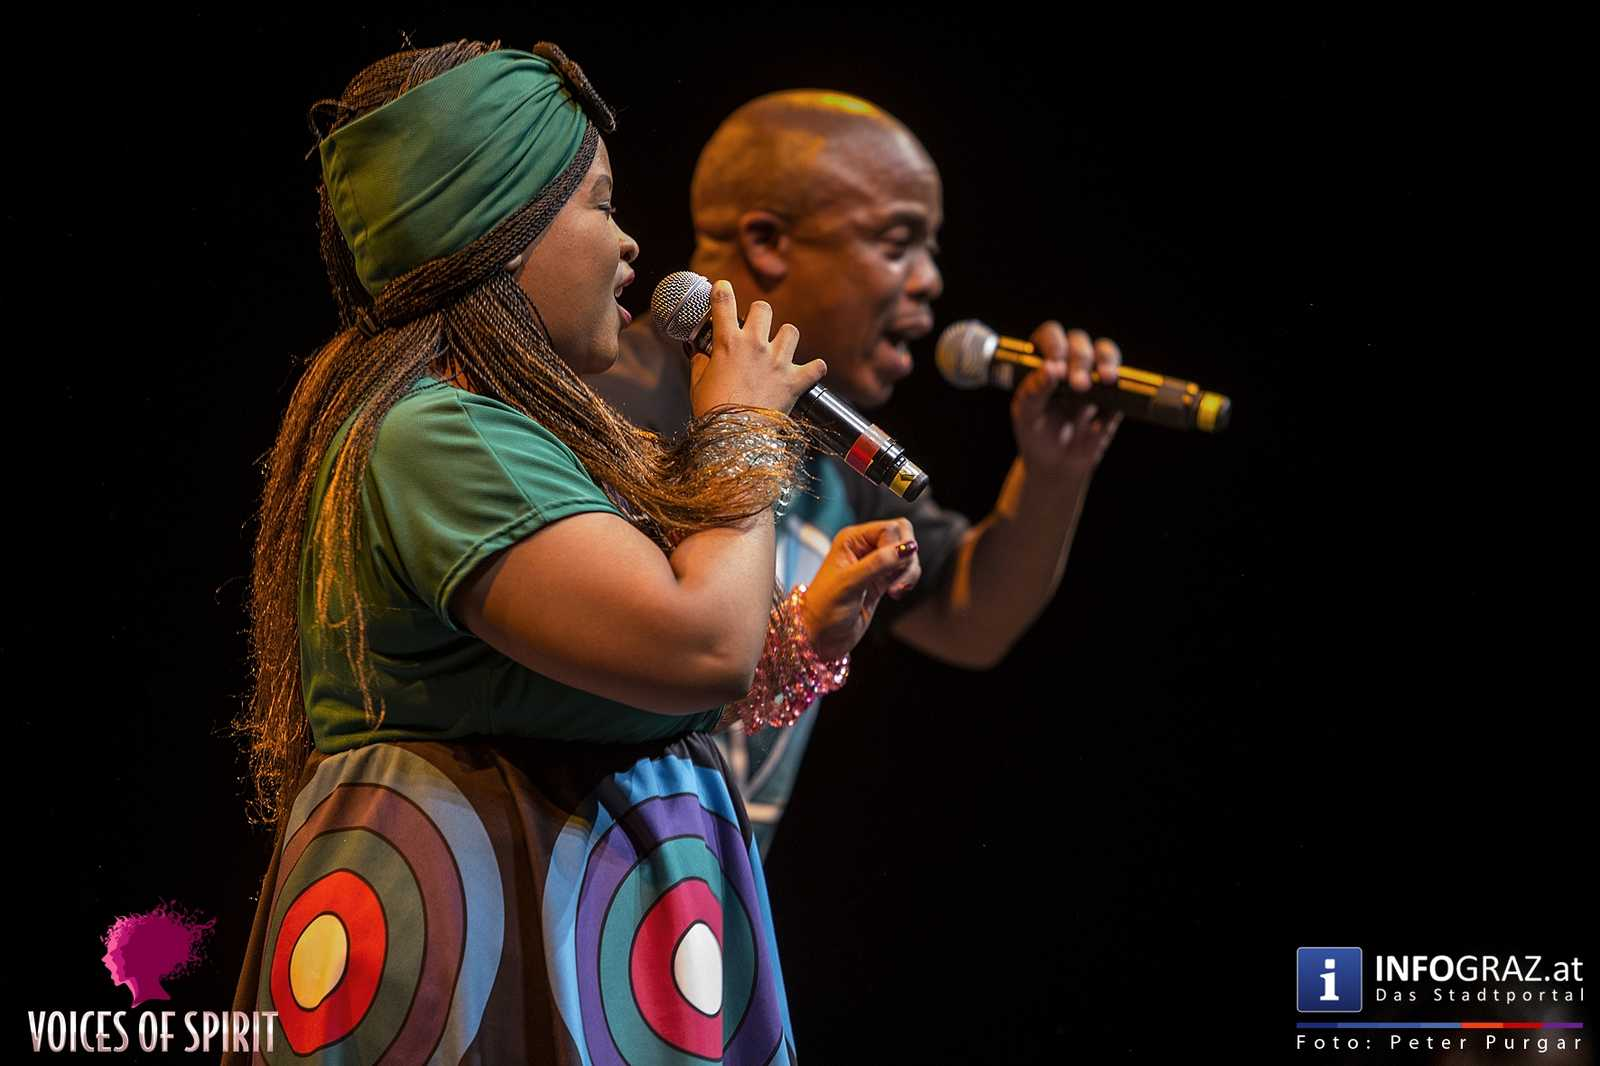 soweto gospel choir internationales chorfestival statdthalle graz voices of spirit eroeffnung festivals 2016 026